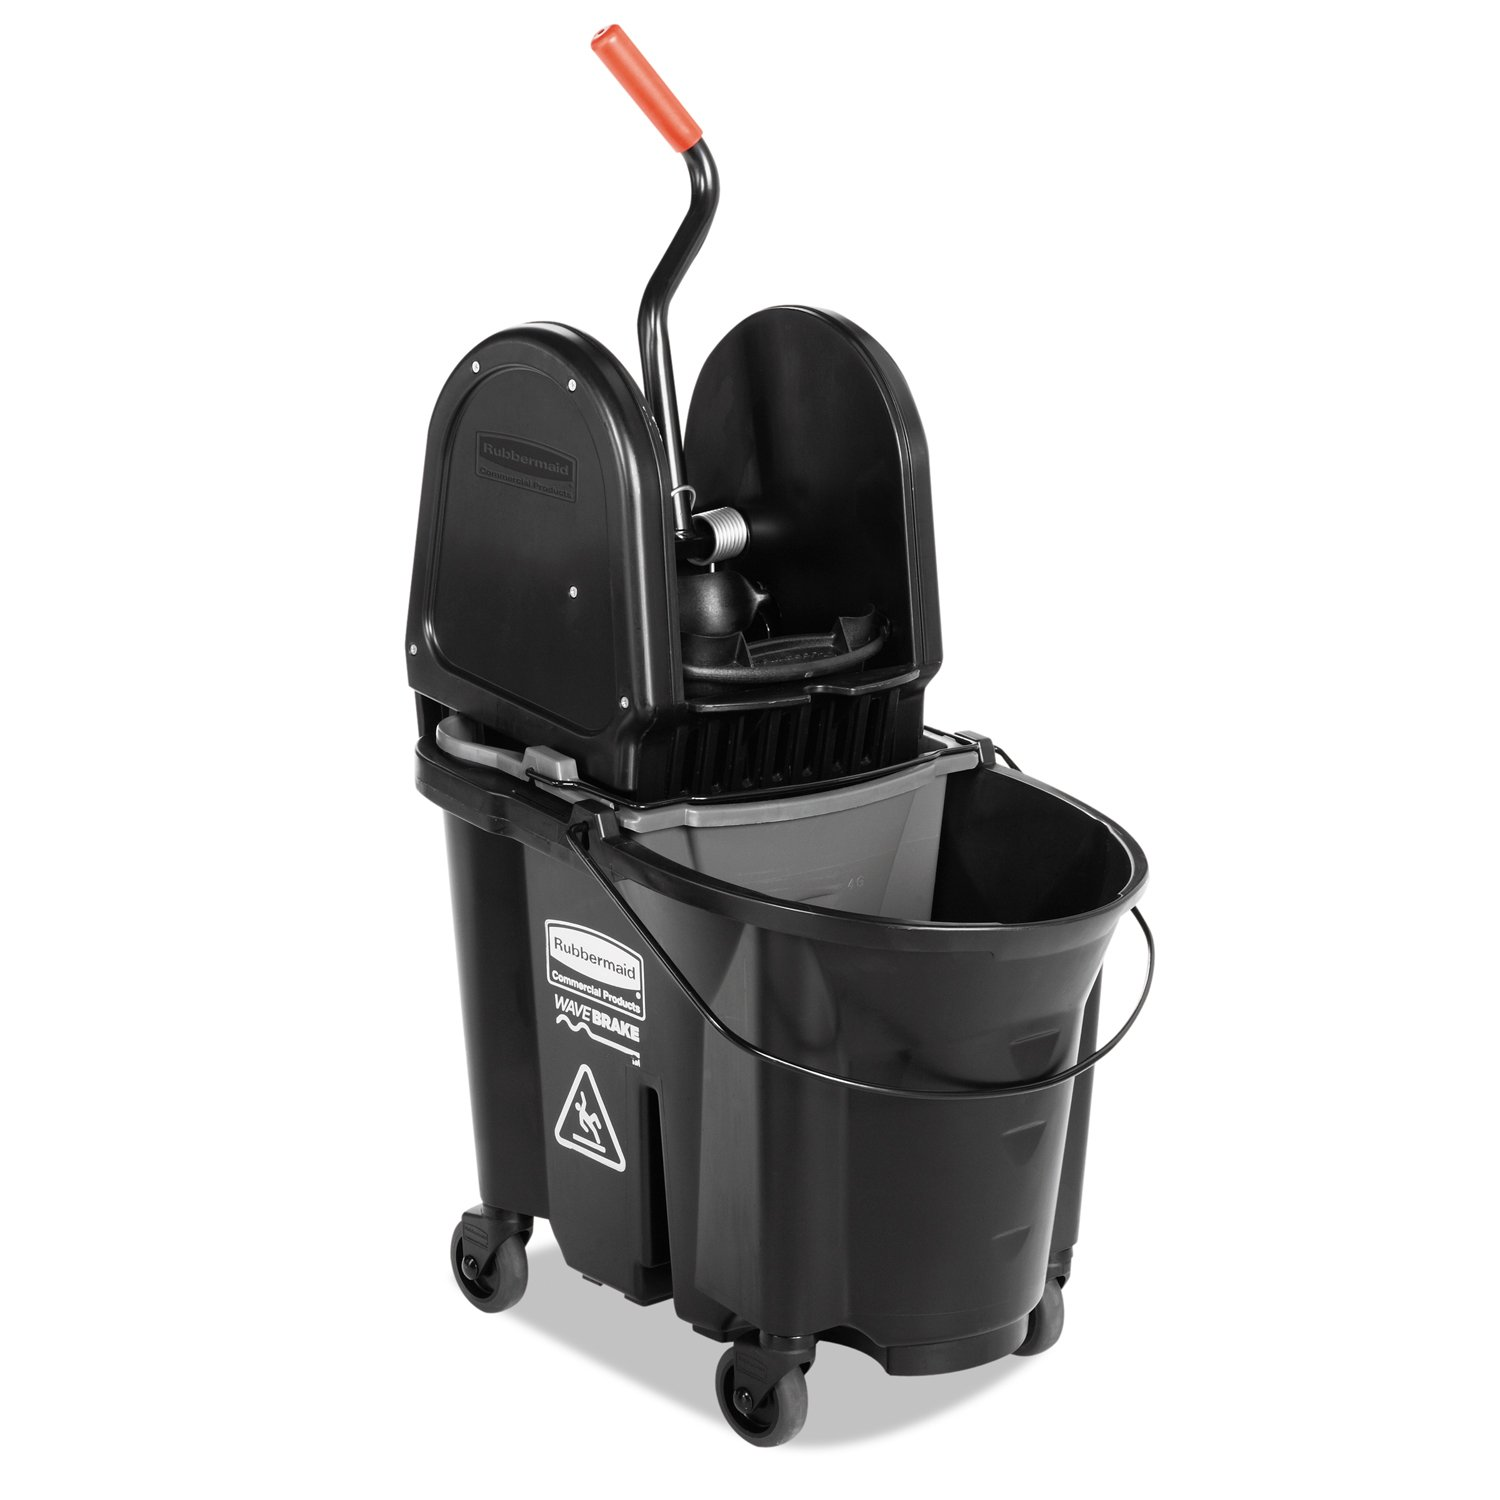 Rubbermaid Commercial 1863898 Executive Series WaveBrake Down-Press Mop Bucket, Black by Rubbermaid Commercial Products